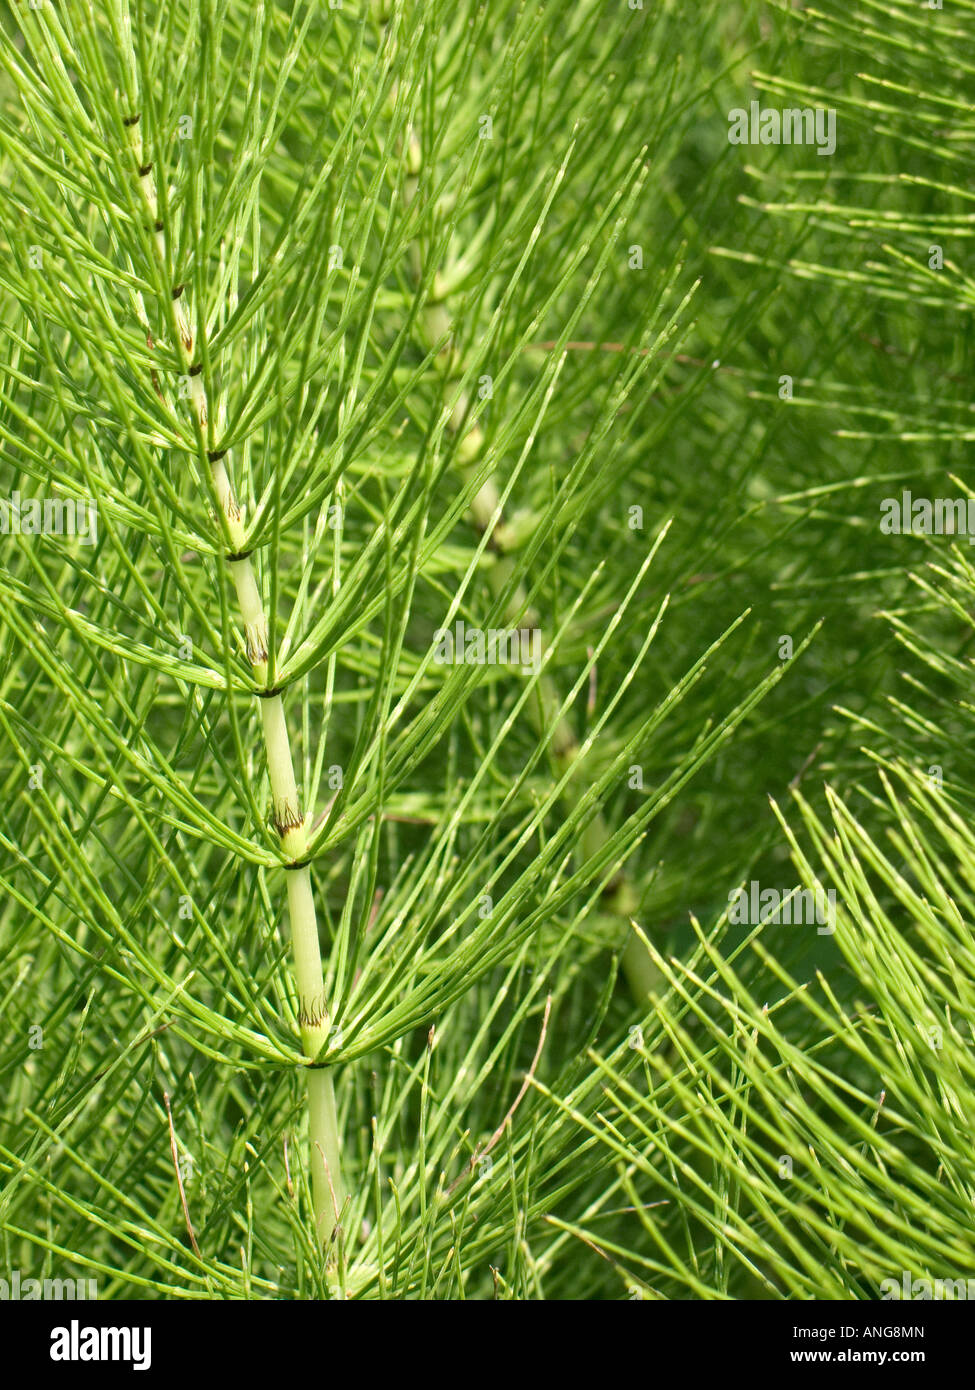 close up view of a mass of horsetail plants equisetum arvense Stock Photo